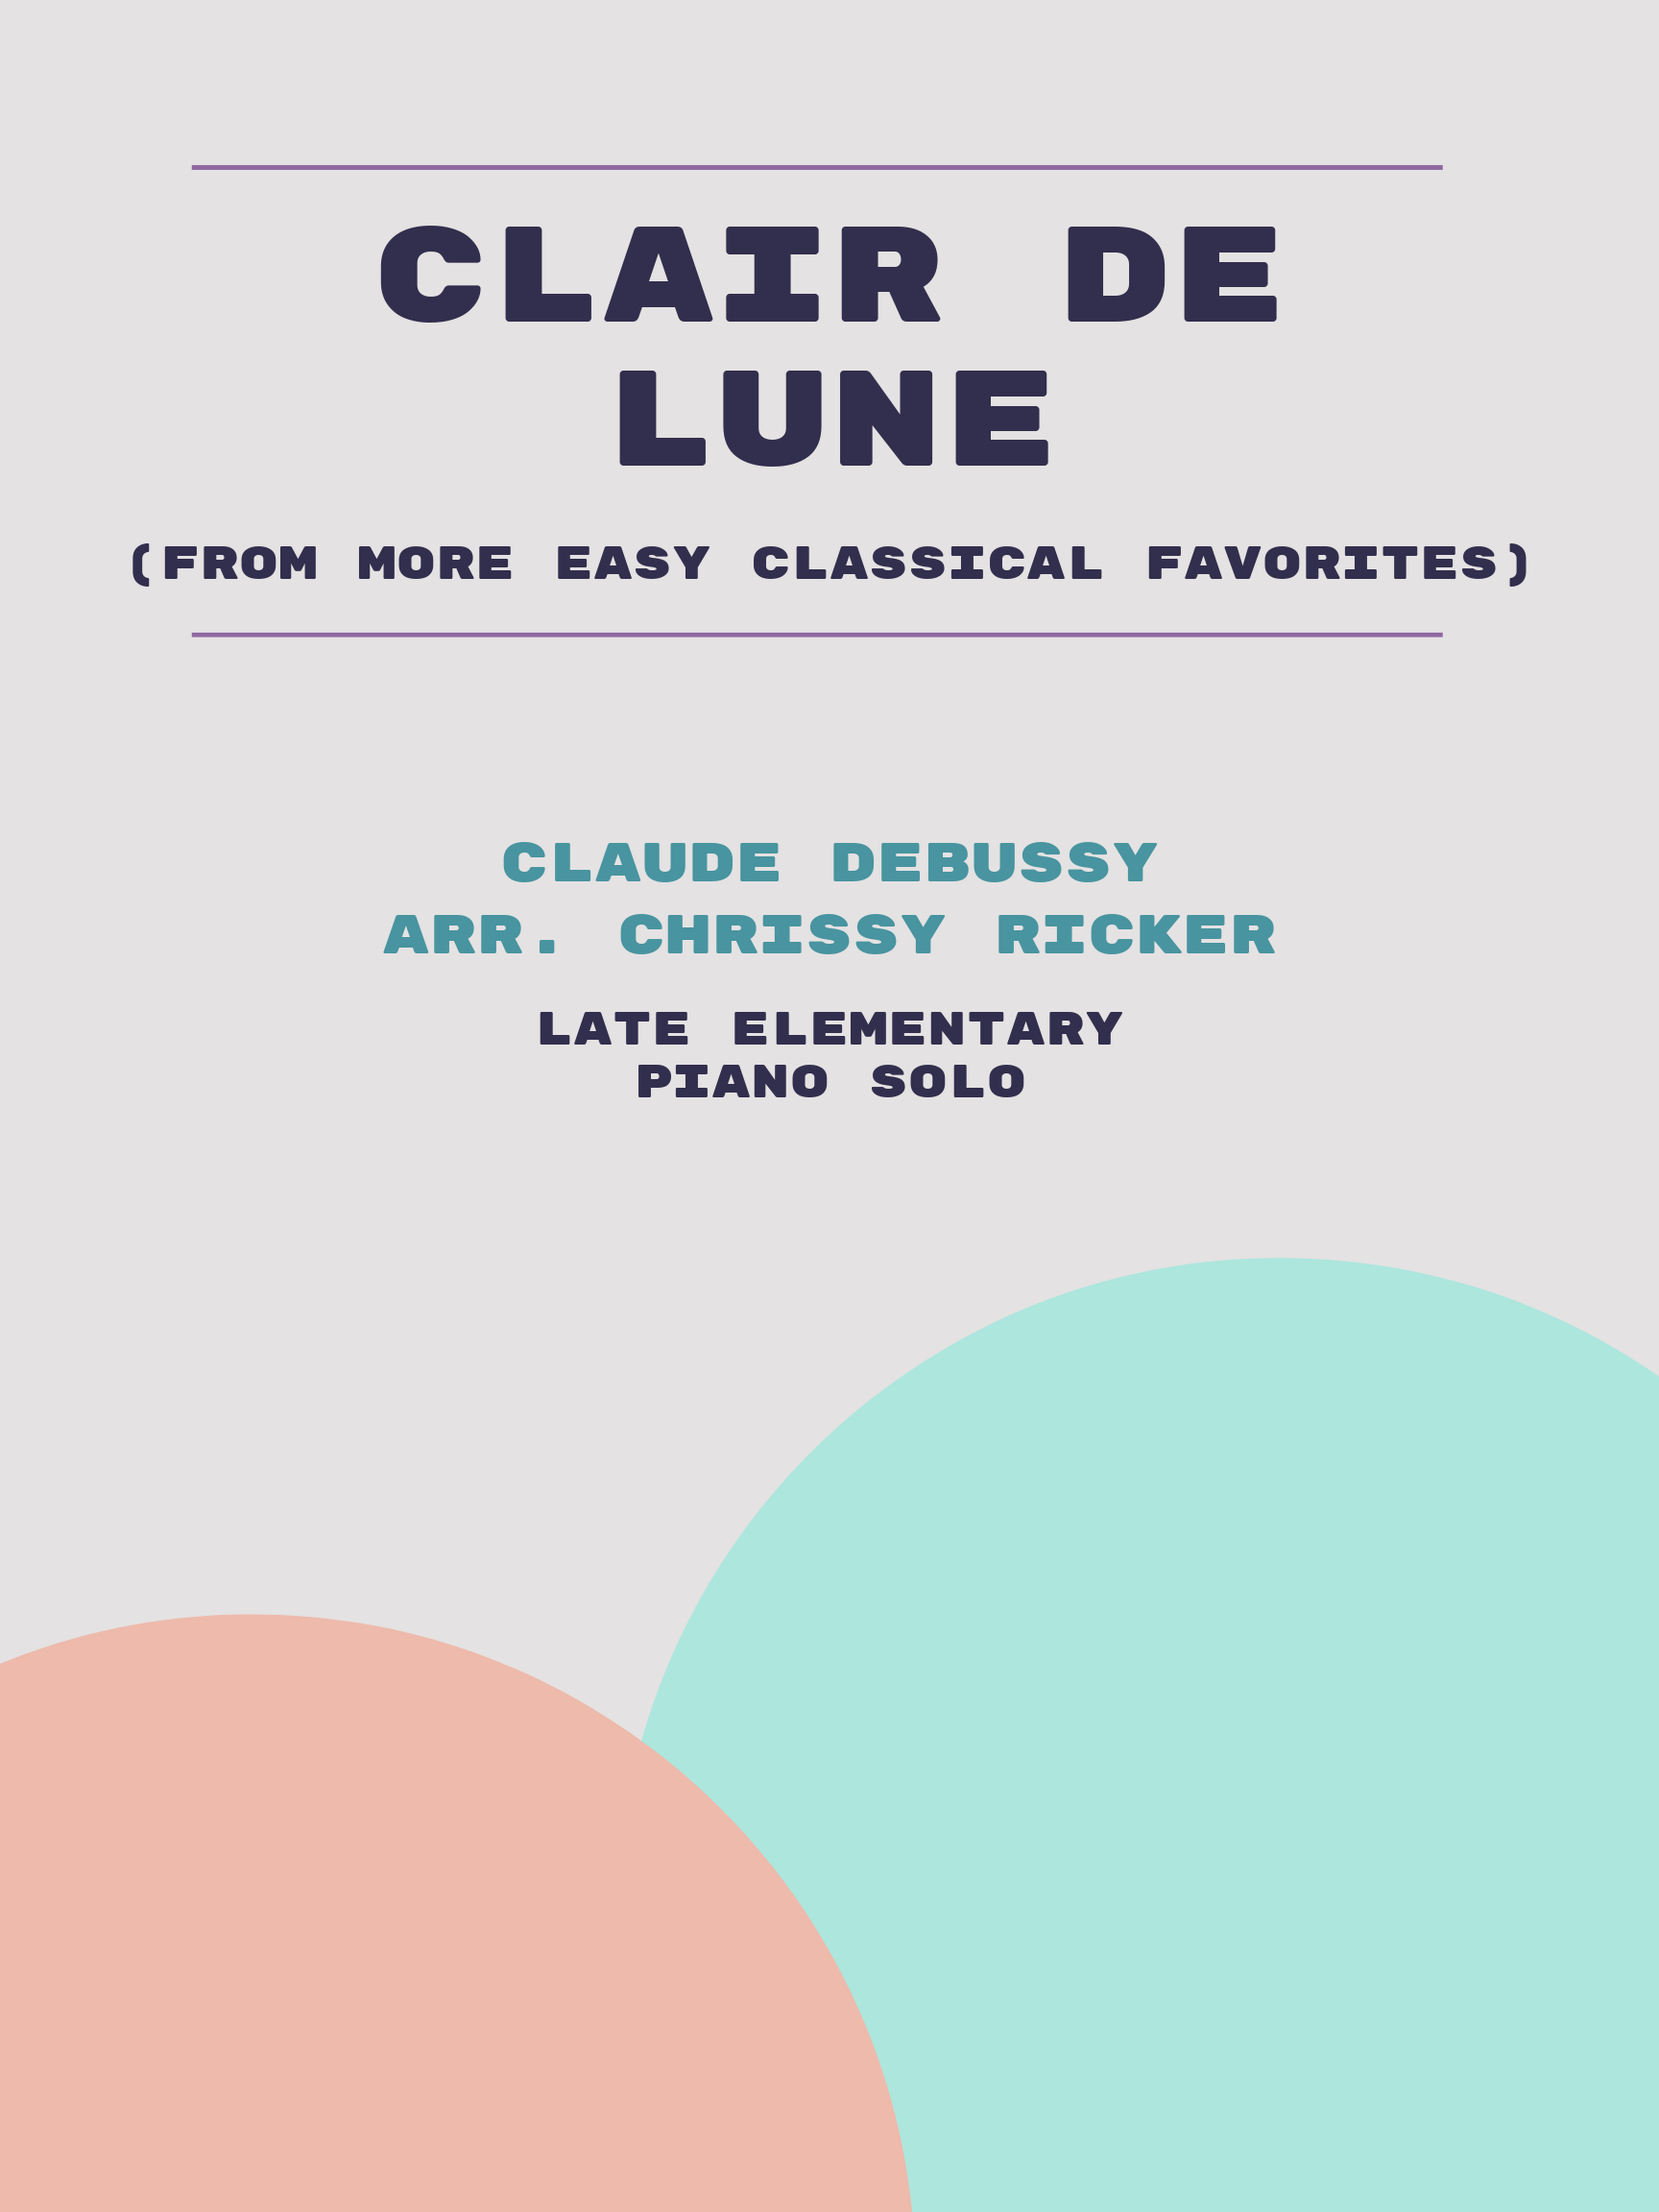 Clair de Lune by Claude Debussy